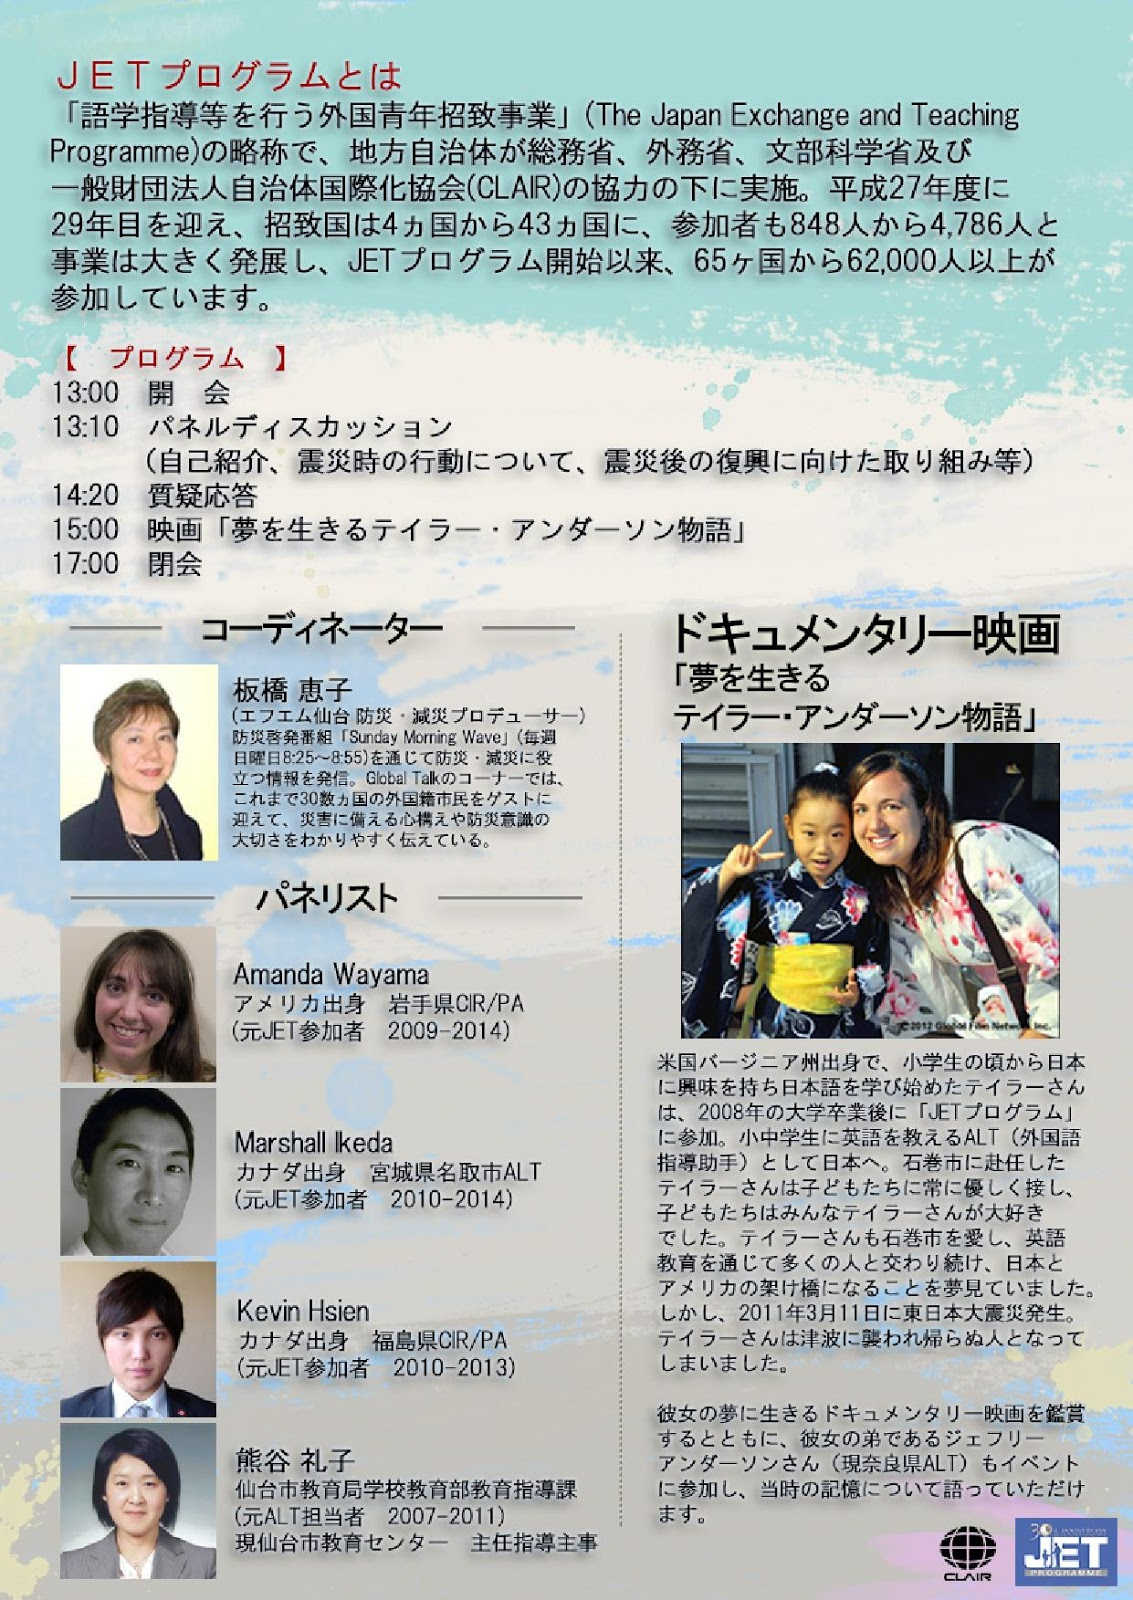 JET Participant Disaster Experience ~ 5 Years After the Tohoku Earthquake & Tsunami ~ flyer back JET参加者の震災経験~東日本大震災から5年~ チラシ裏